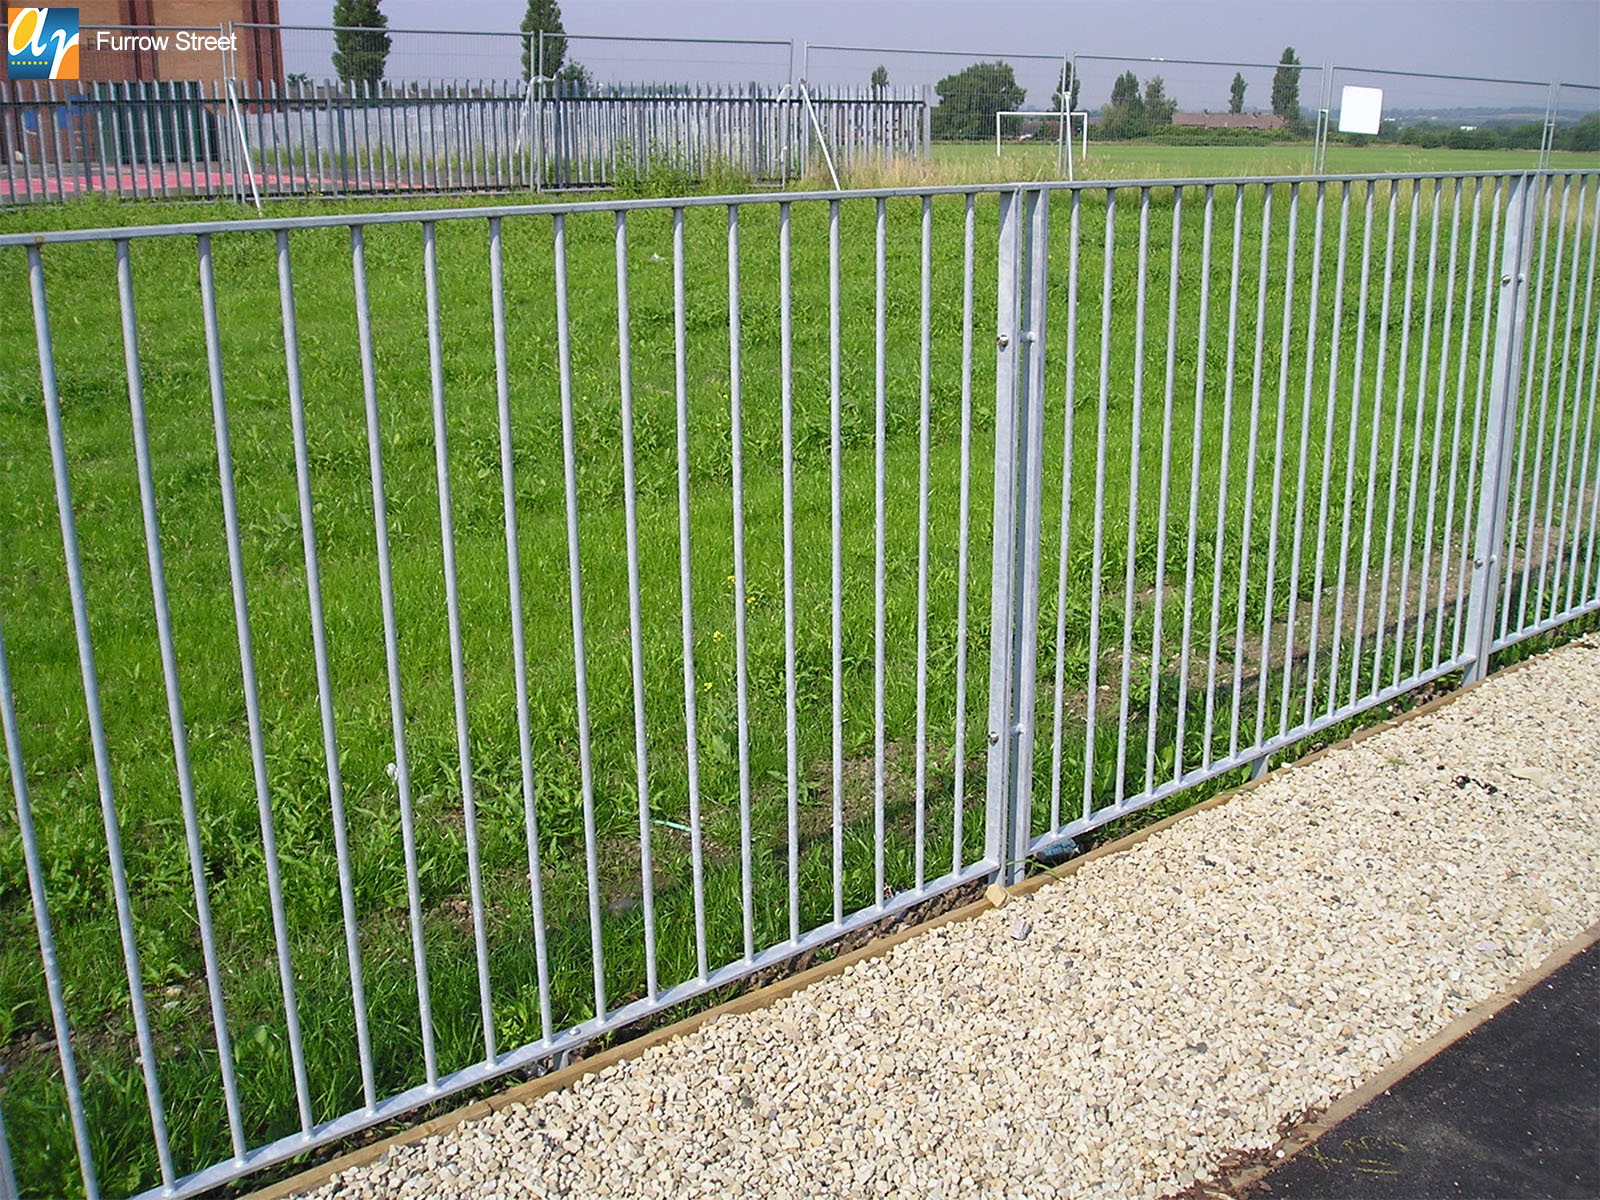 Furrow Street flat top metal railings